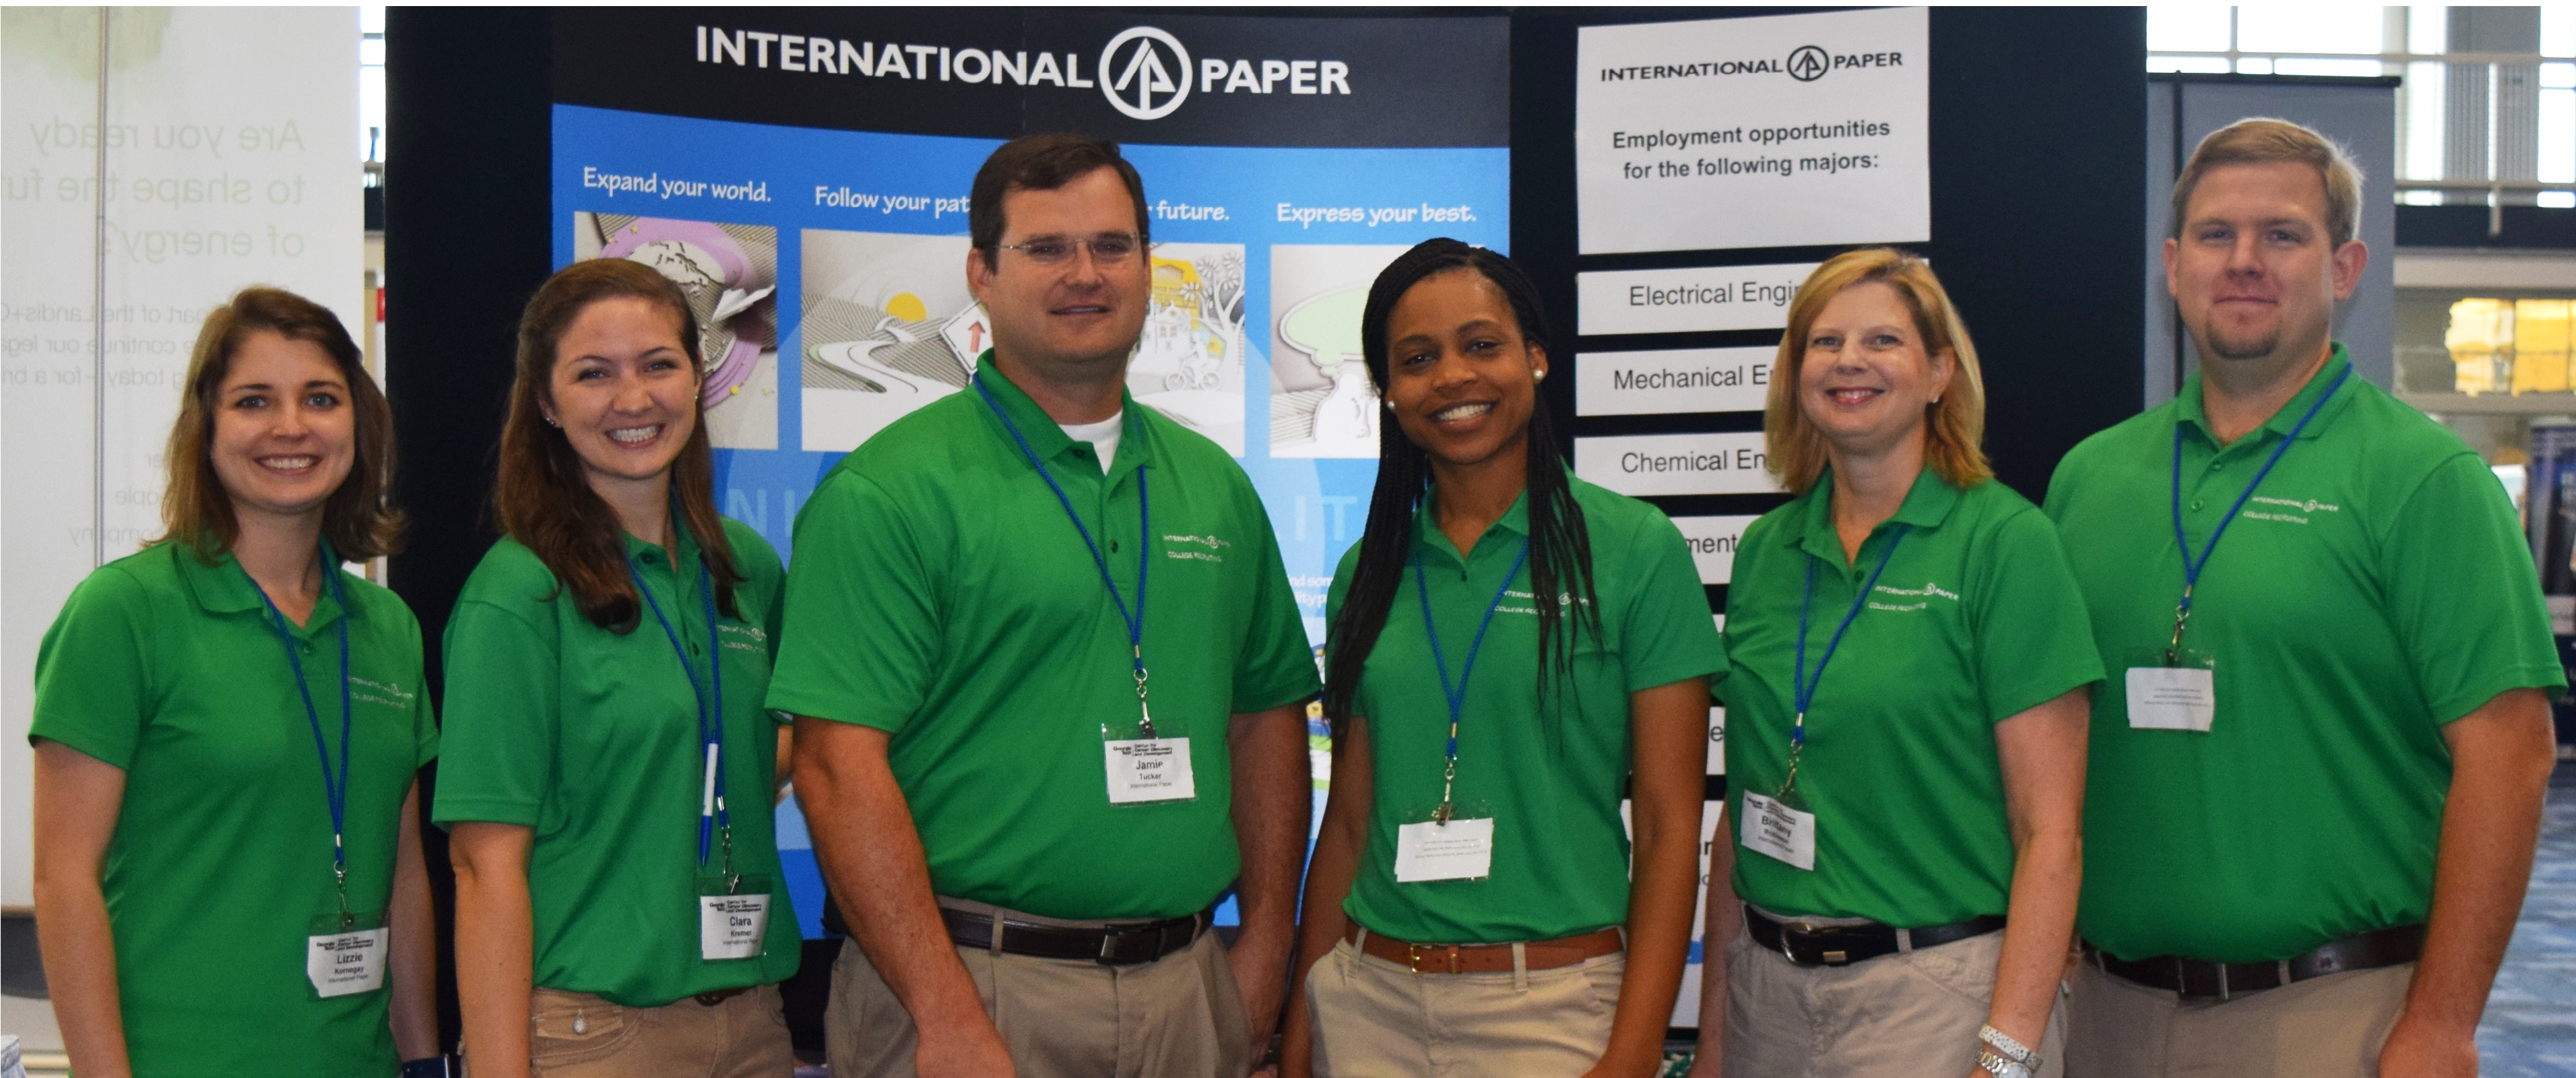 International Paper Campus Recruiting